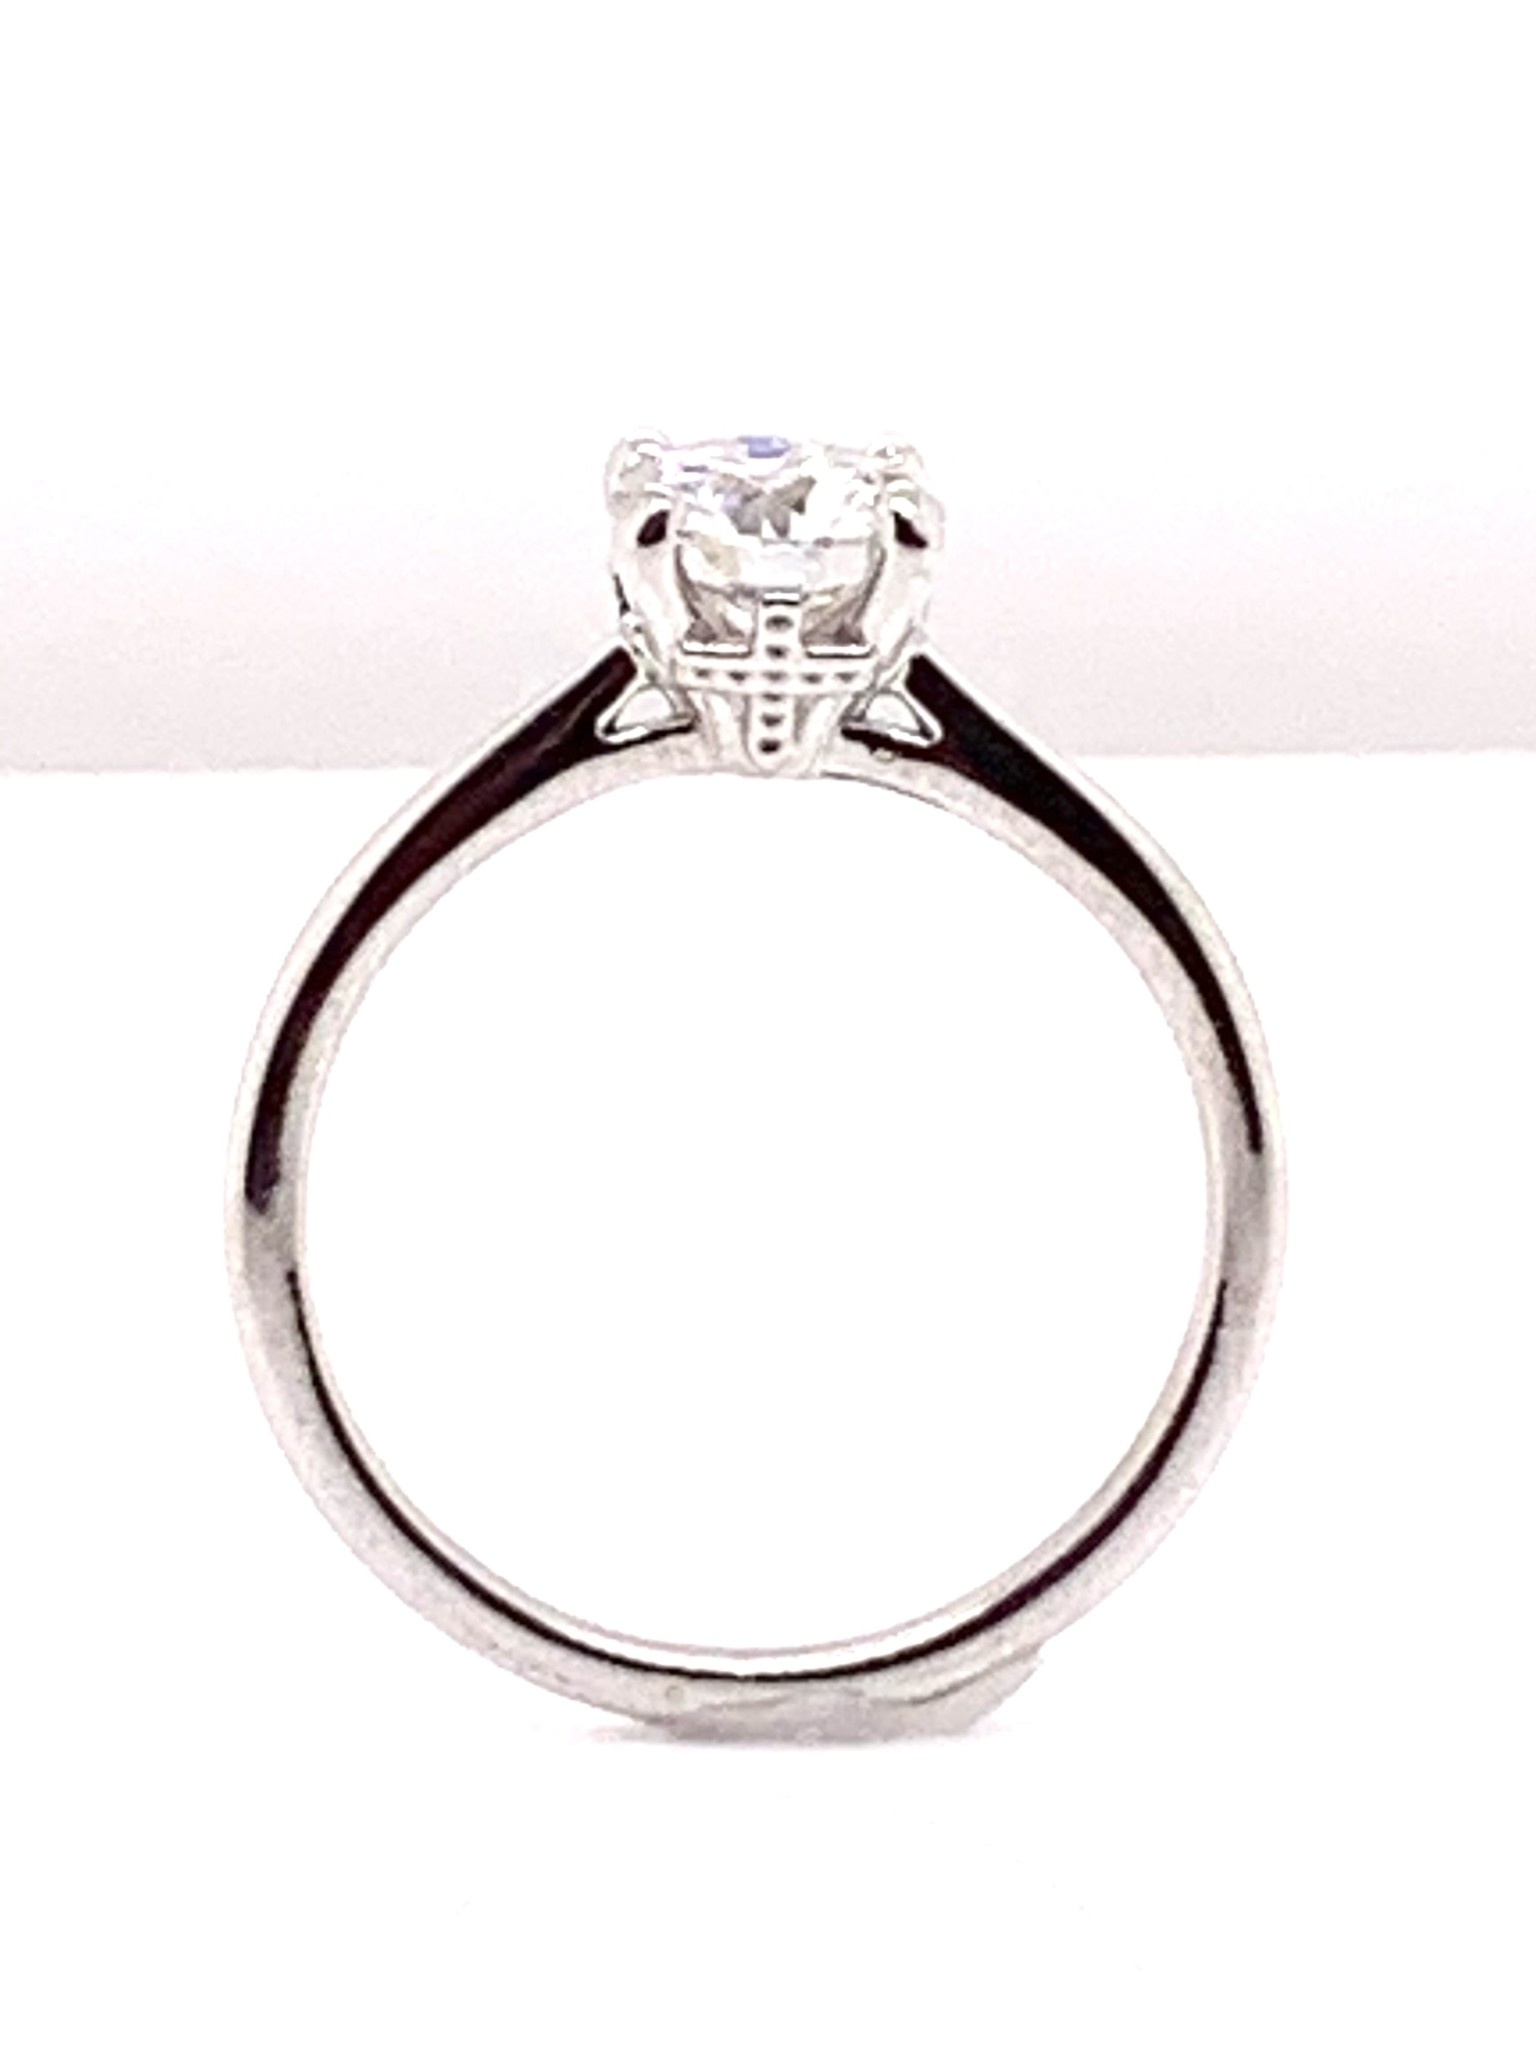 10k white gold 6.5mm round moissanite hidden cross solitaire engagement ring